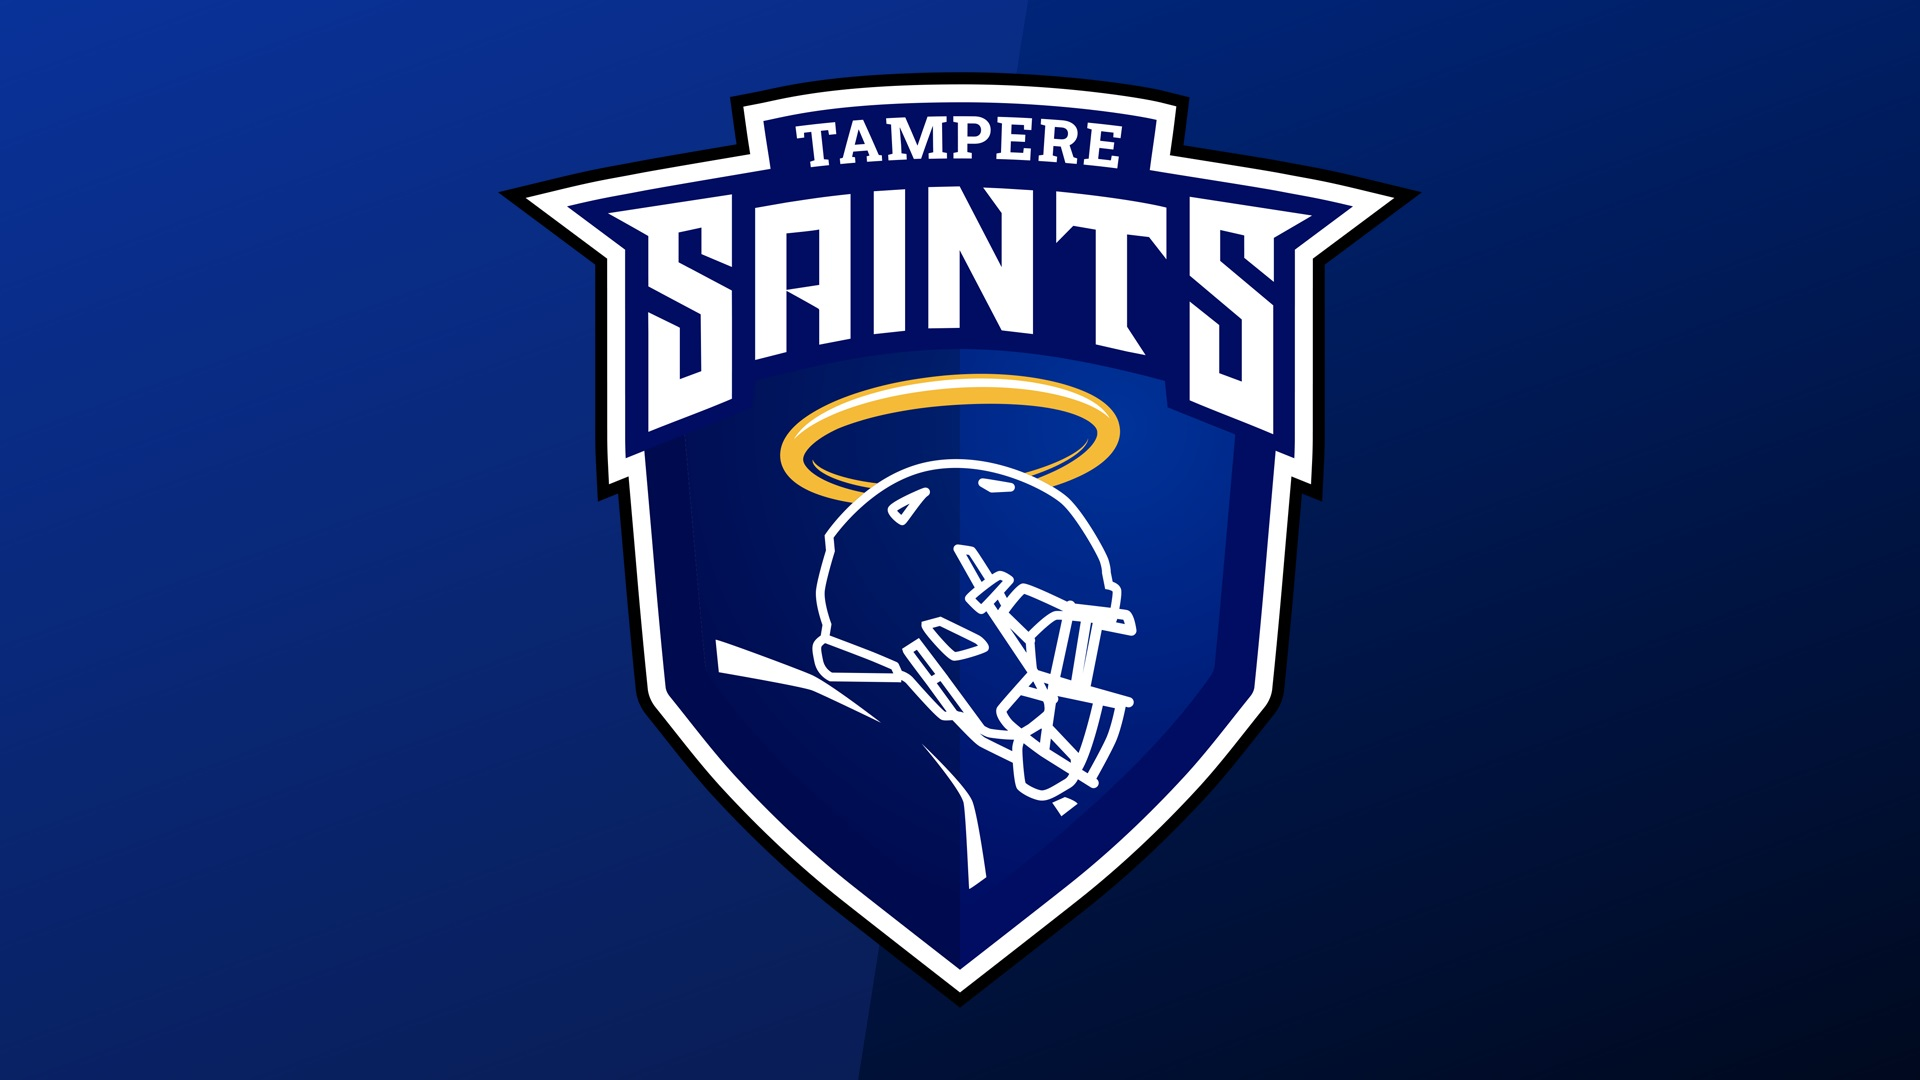 Tampere Saints